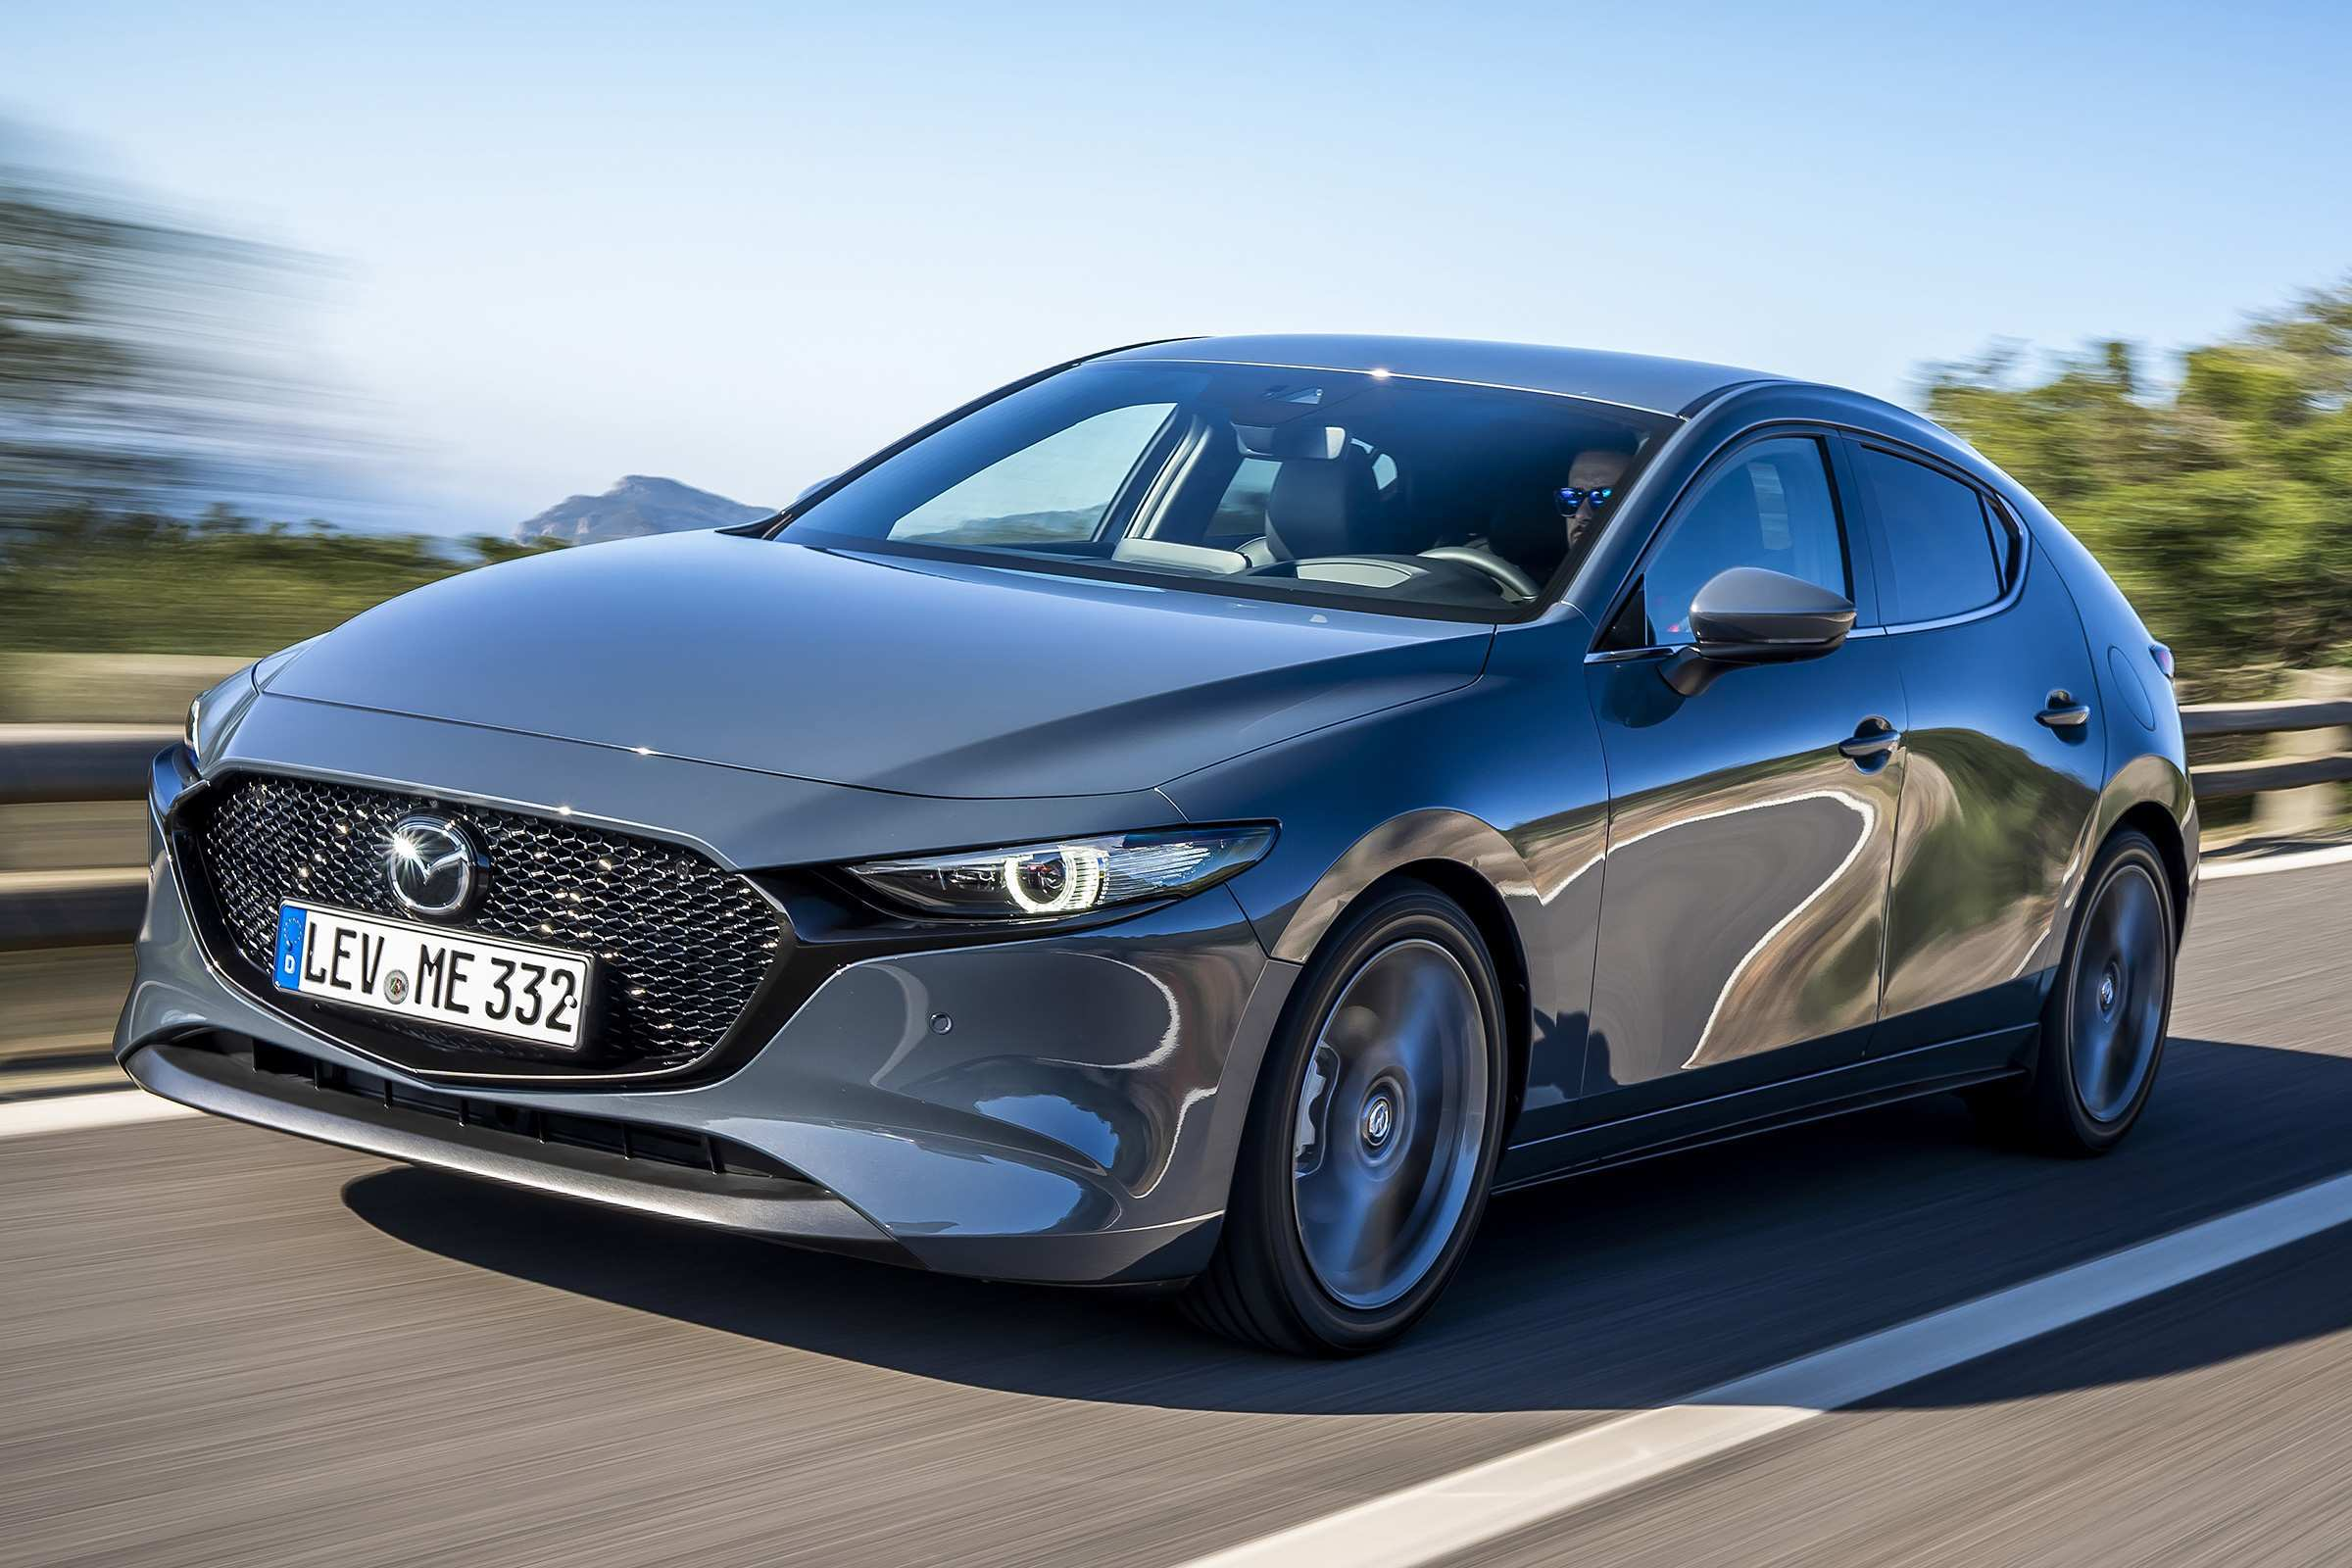 73 Best Review New Mazda 3 2019 Official Spesification Speed Test by New Mazda 3 2019 Official Spesification